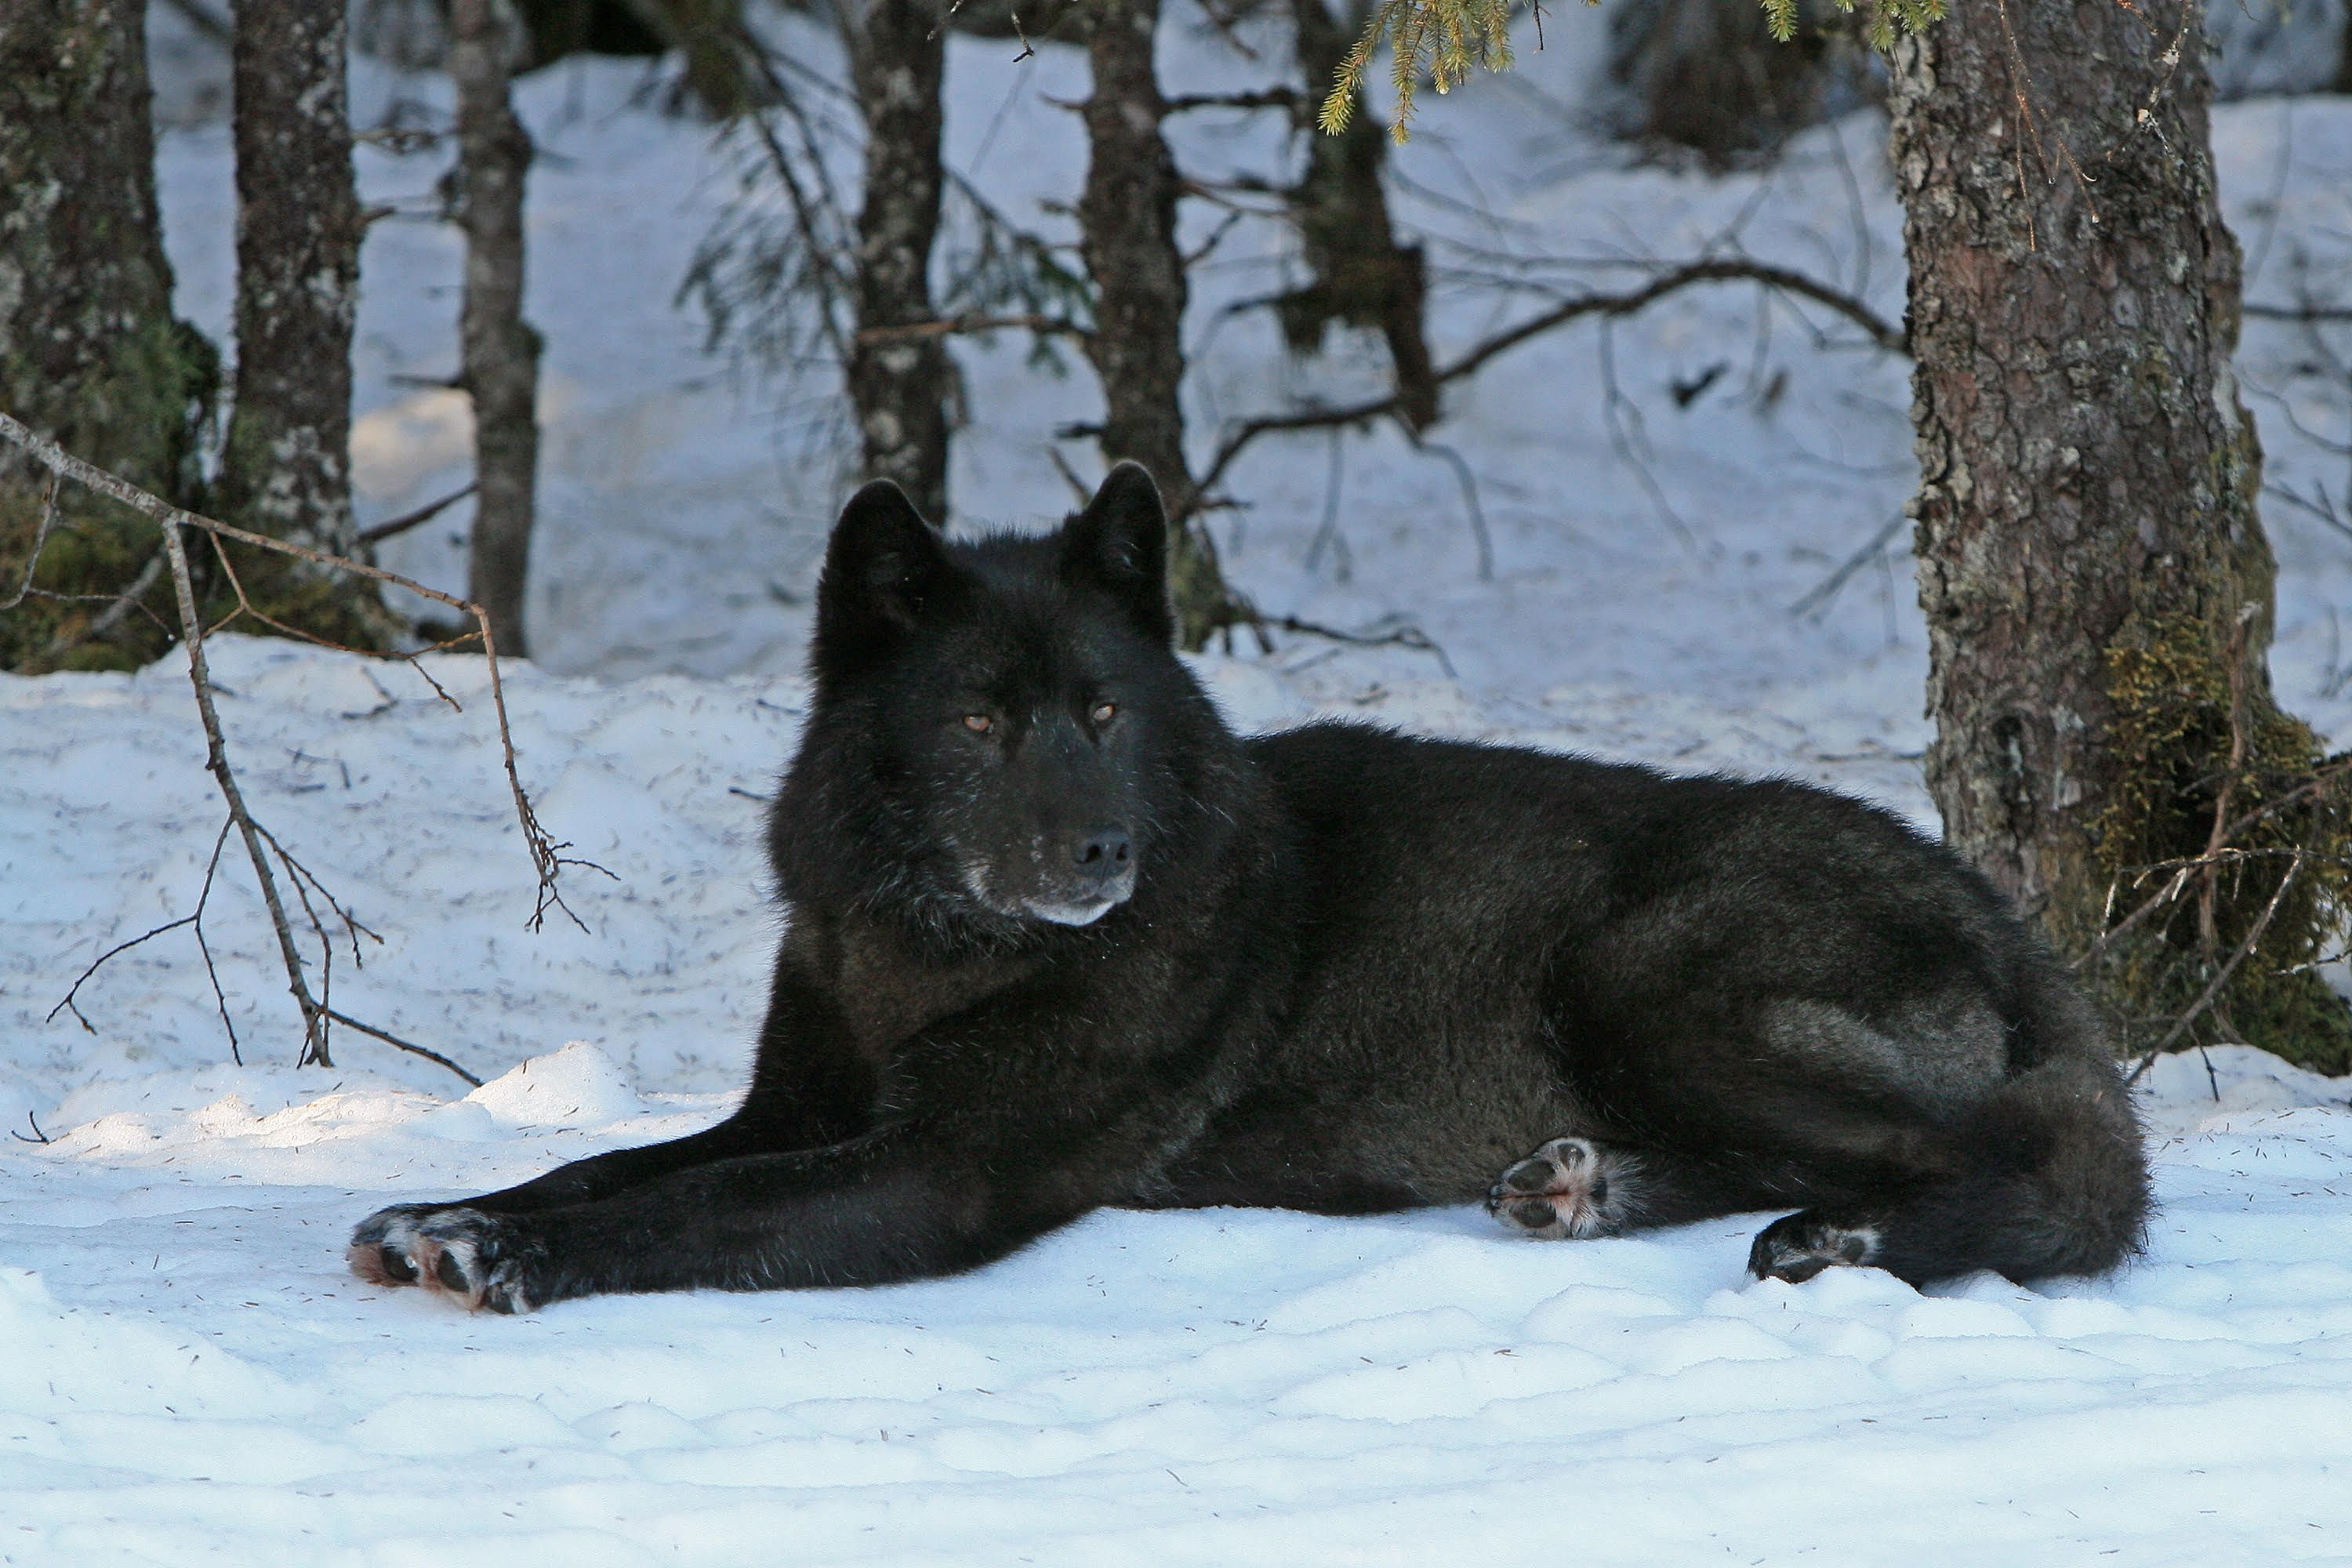 Support Wilmer Valderrama's Fight to Keep Gray Wolves on